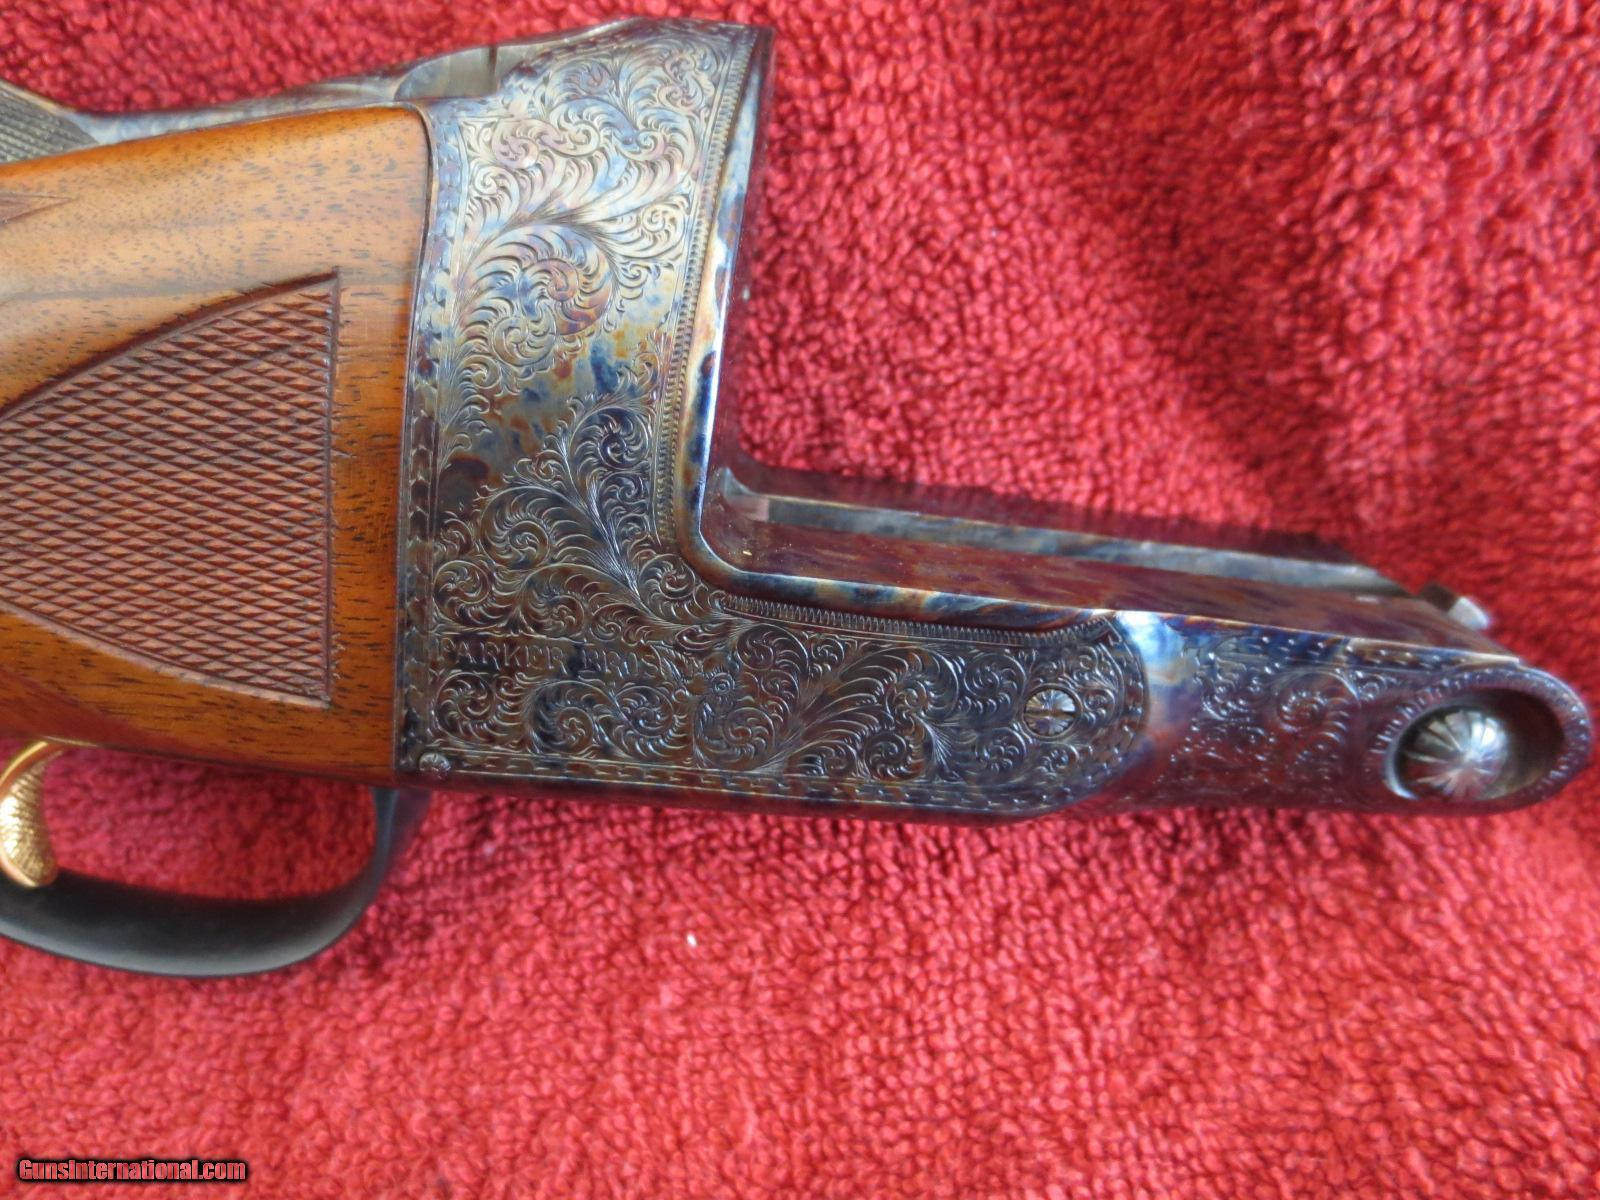 Old Belgium 12 gage double hammer marked T. Parker